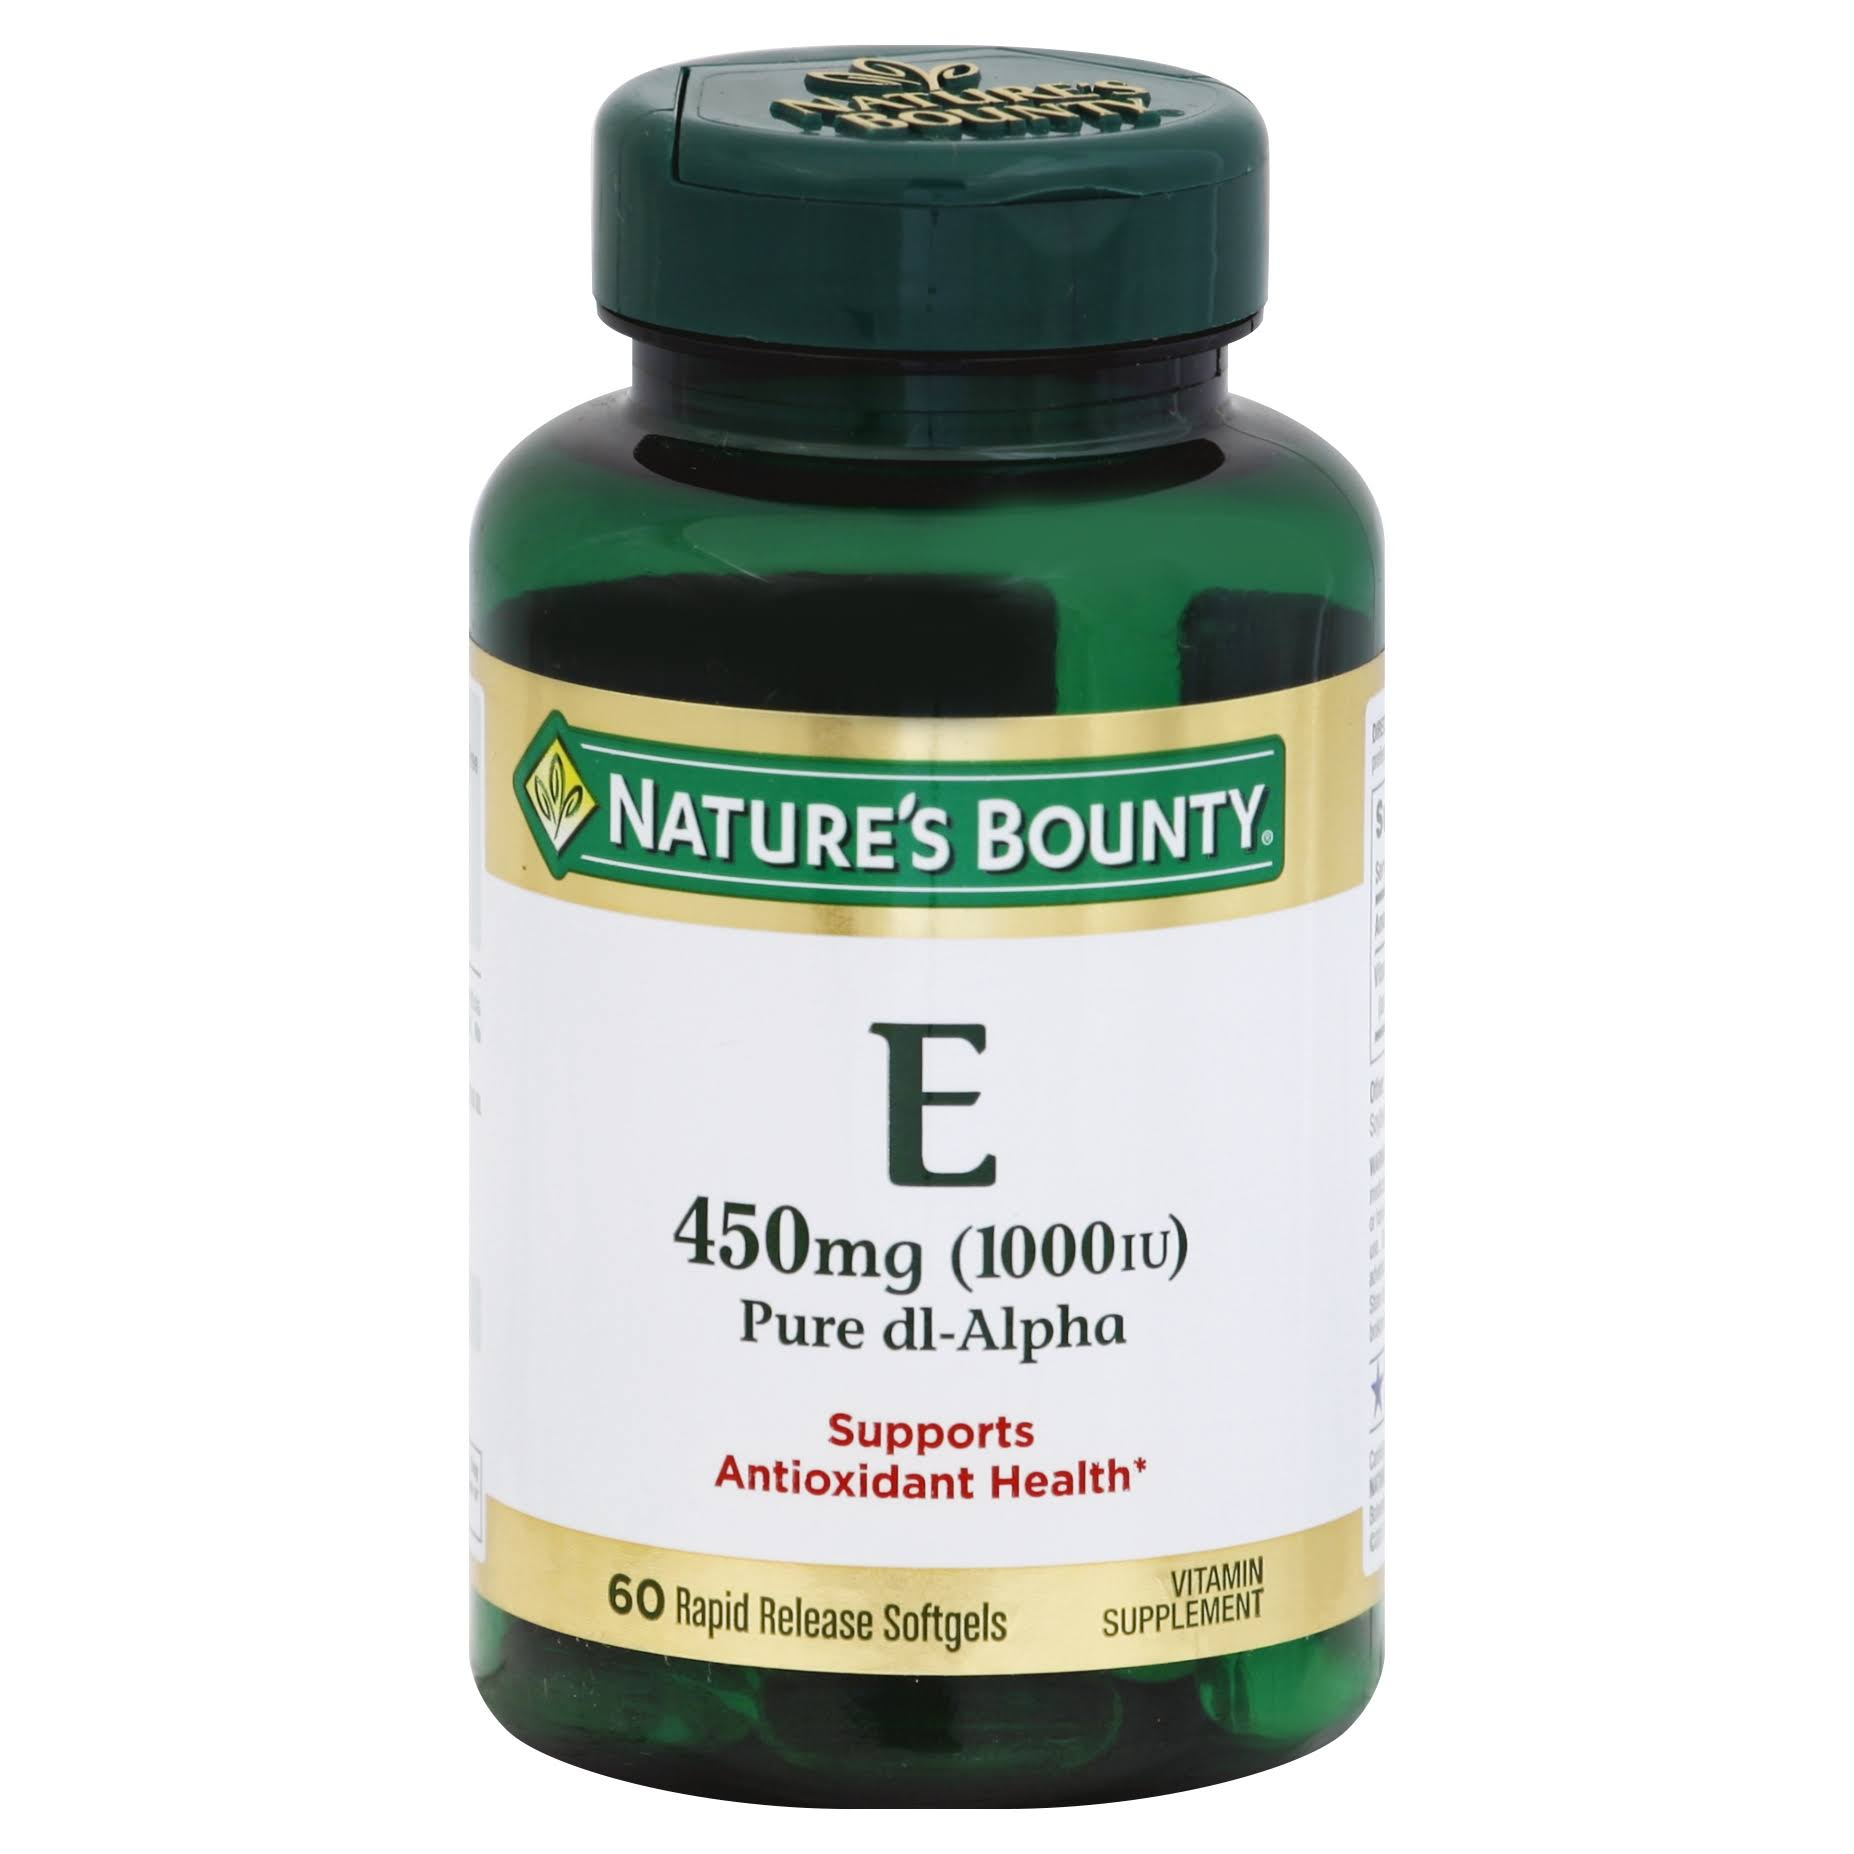 Nature's Bounty E Pure dl-Alpha Rapid Release Supplement - 1000 IU, 60ct